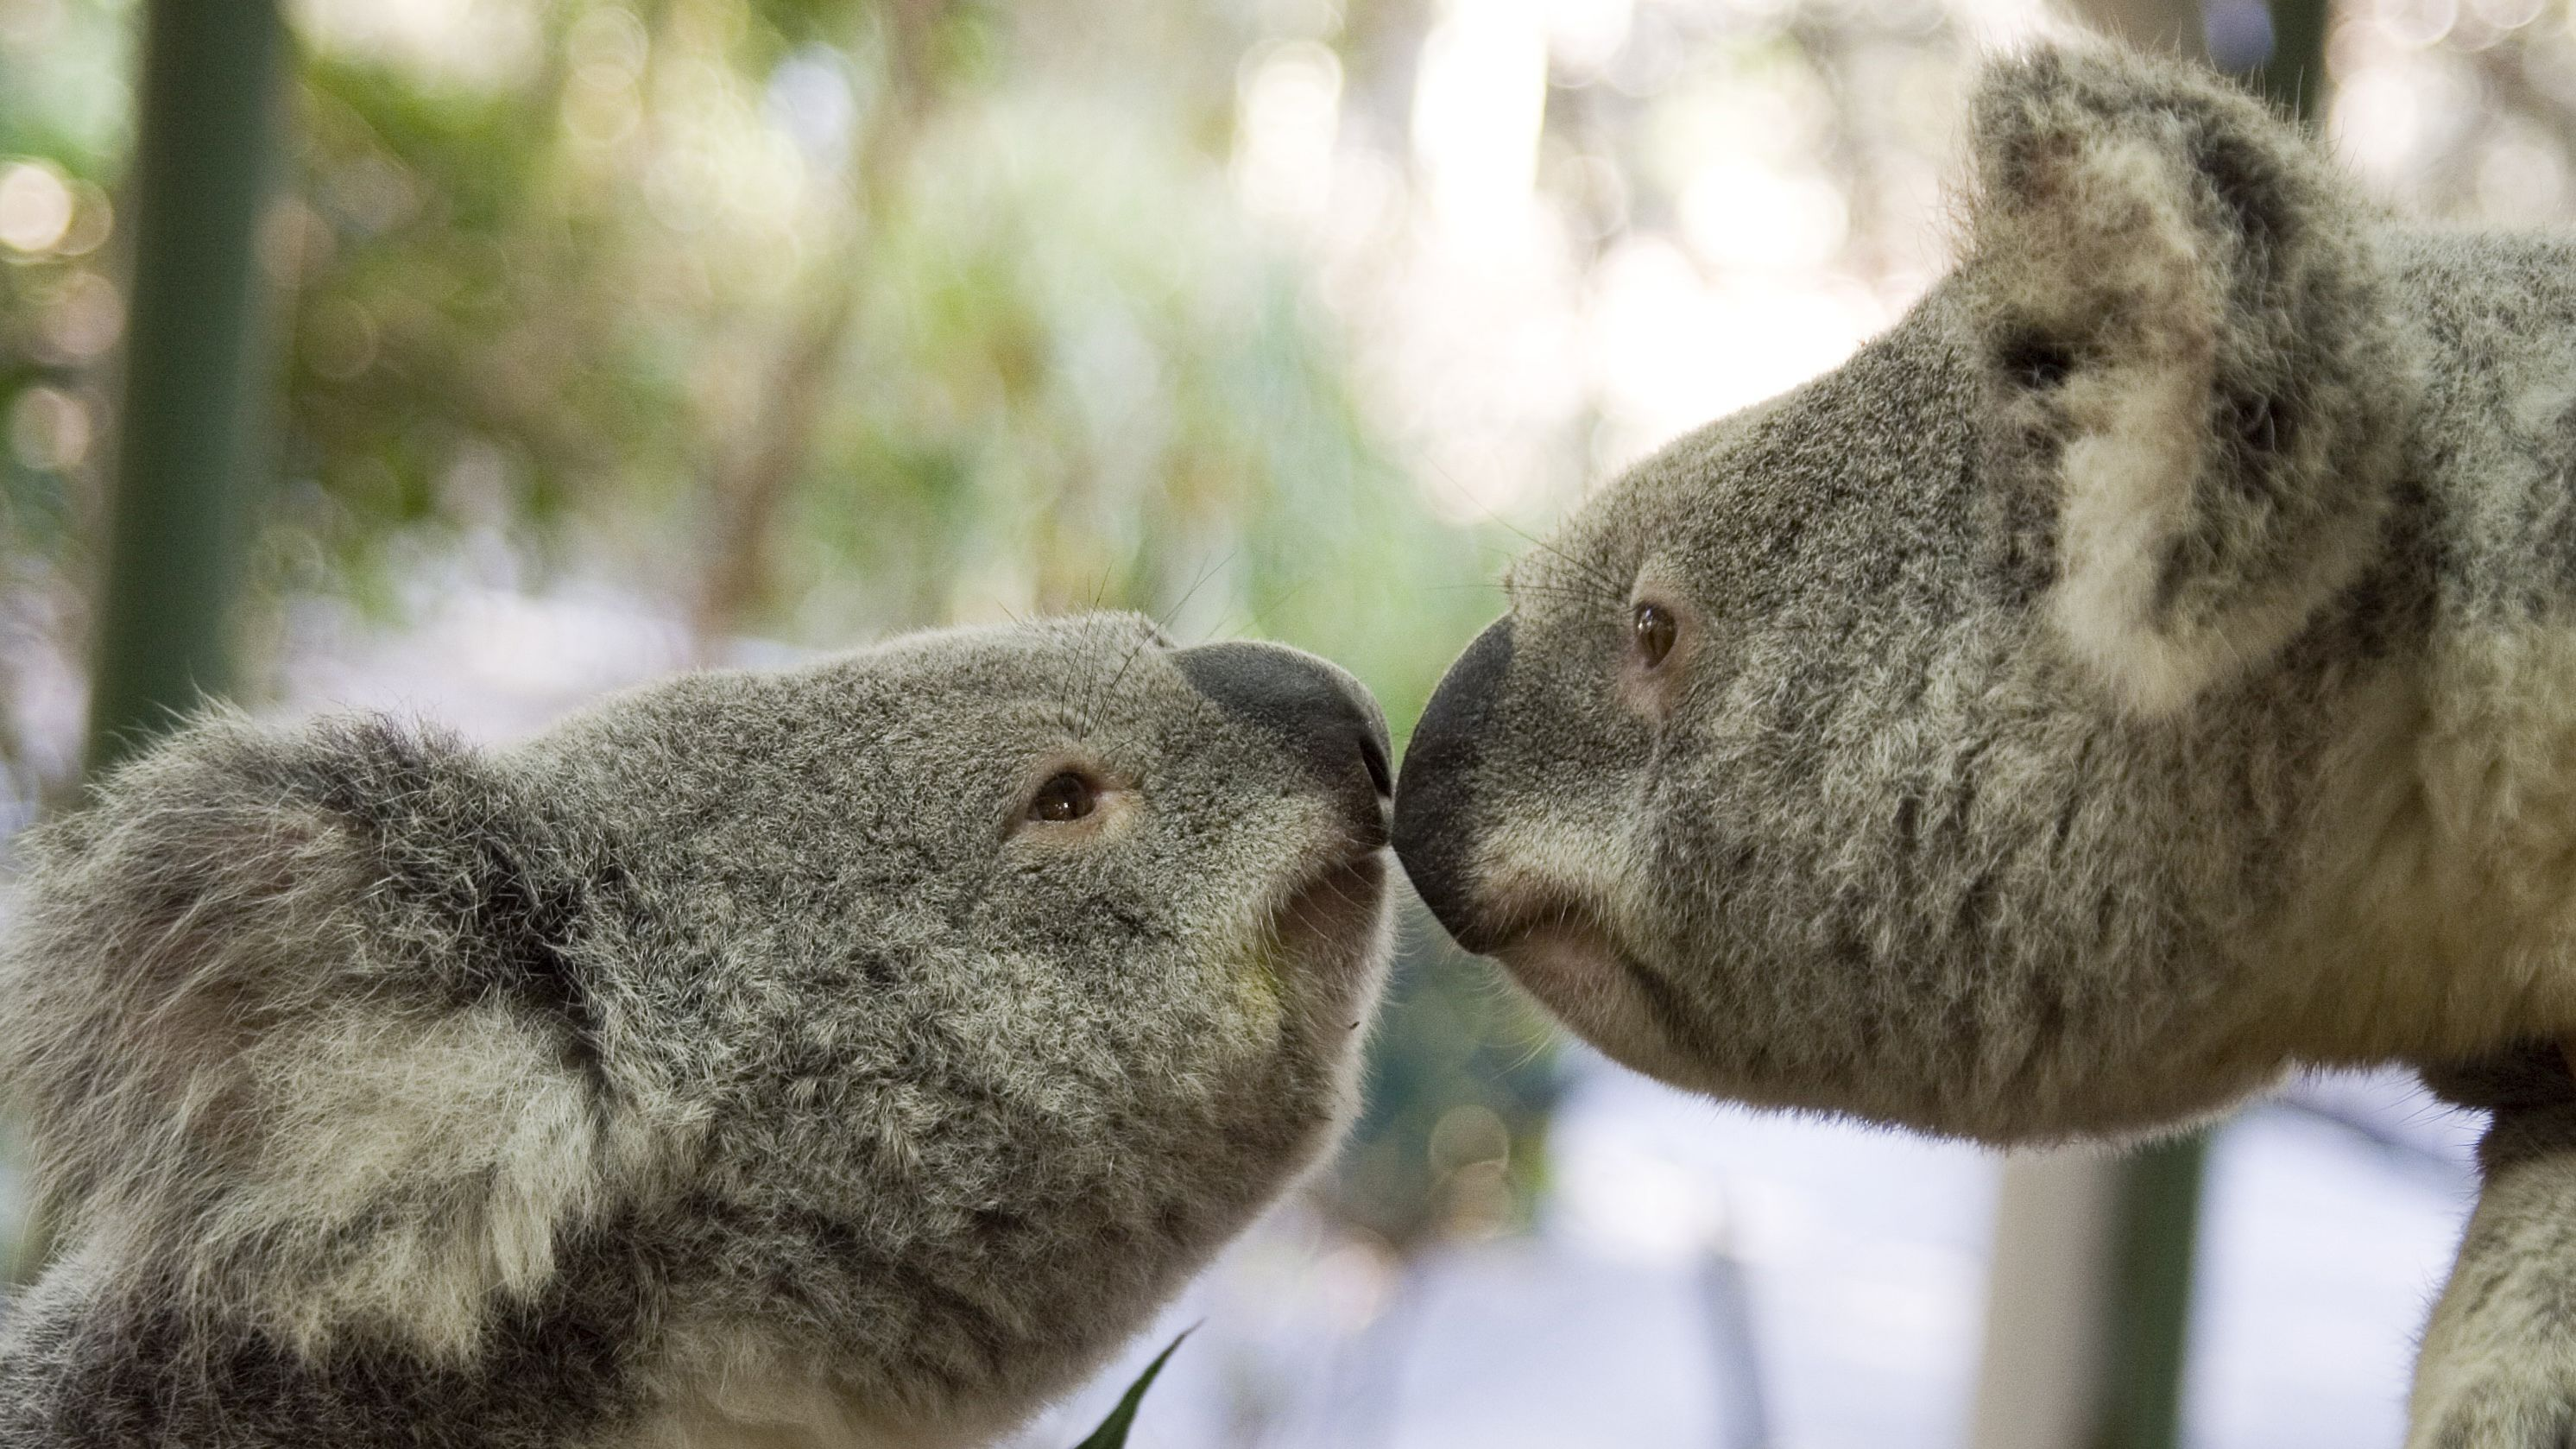 Two koalas looking at each other at the Lone Pine Koala Sanctuary in Brisbane